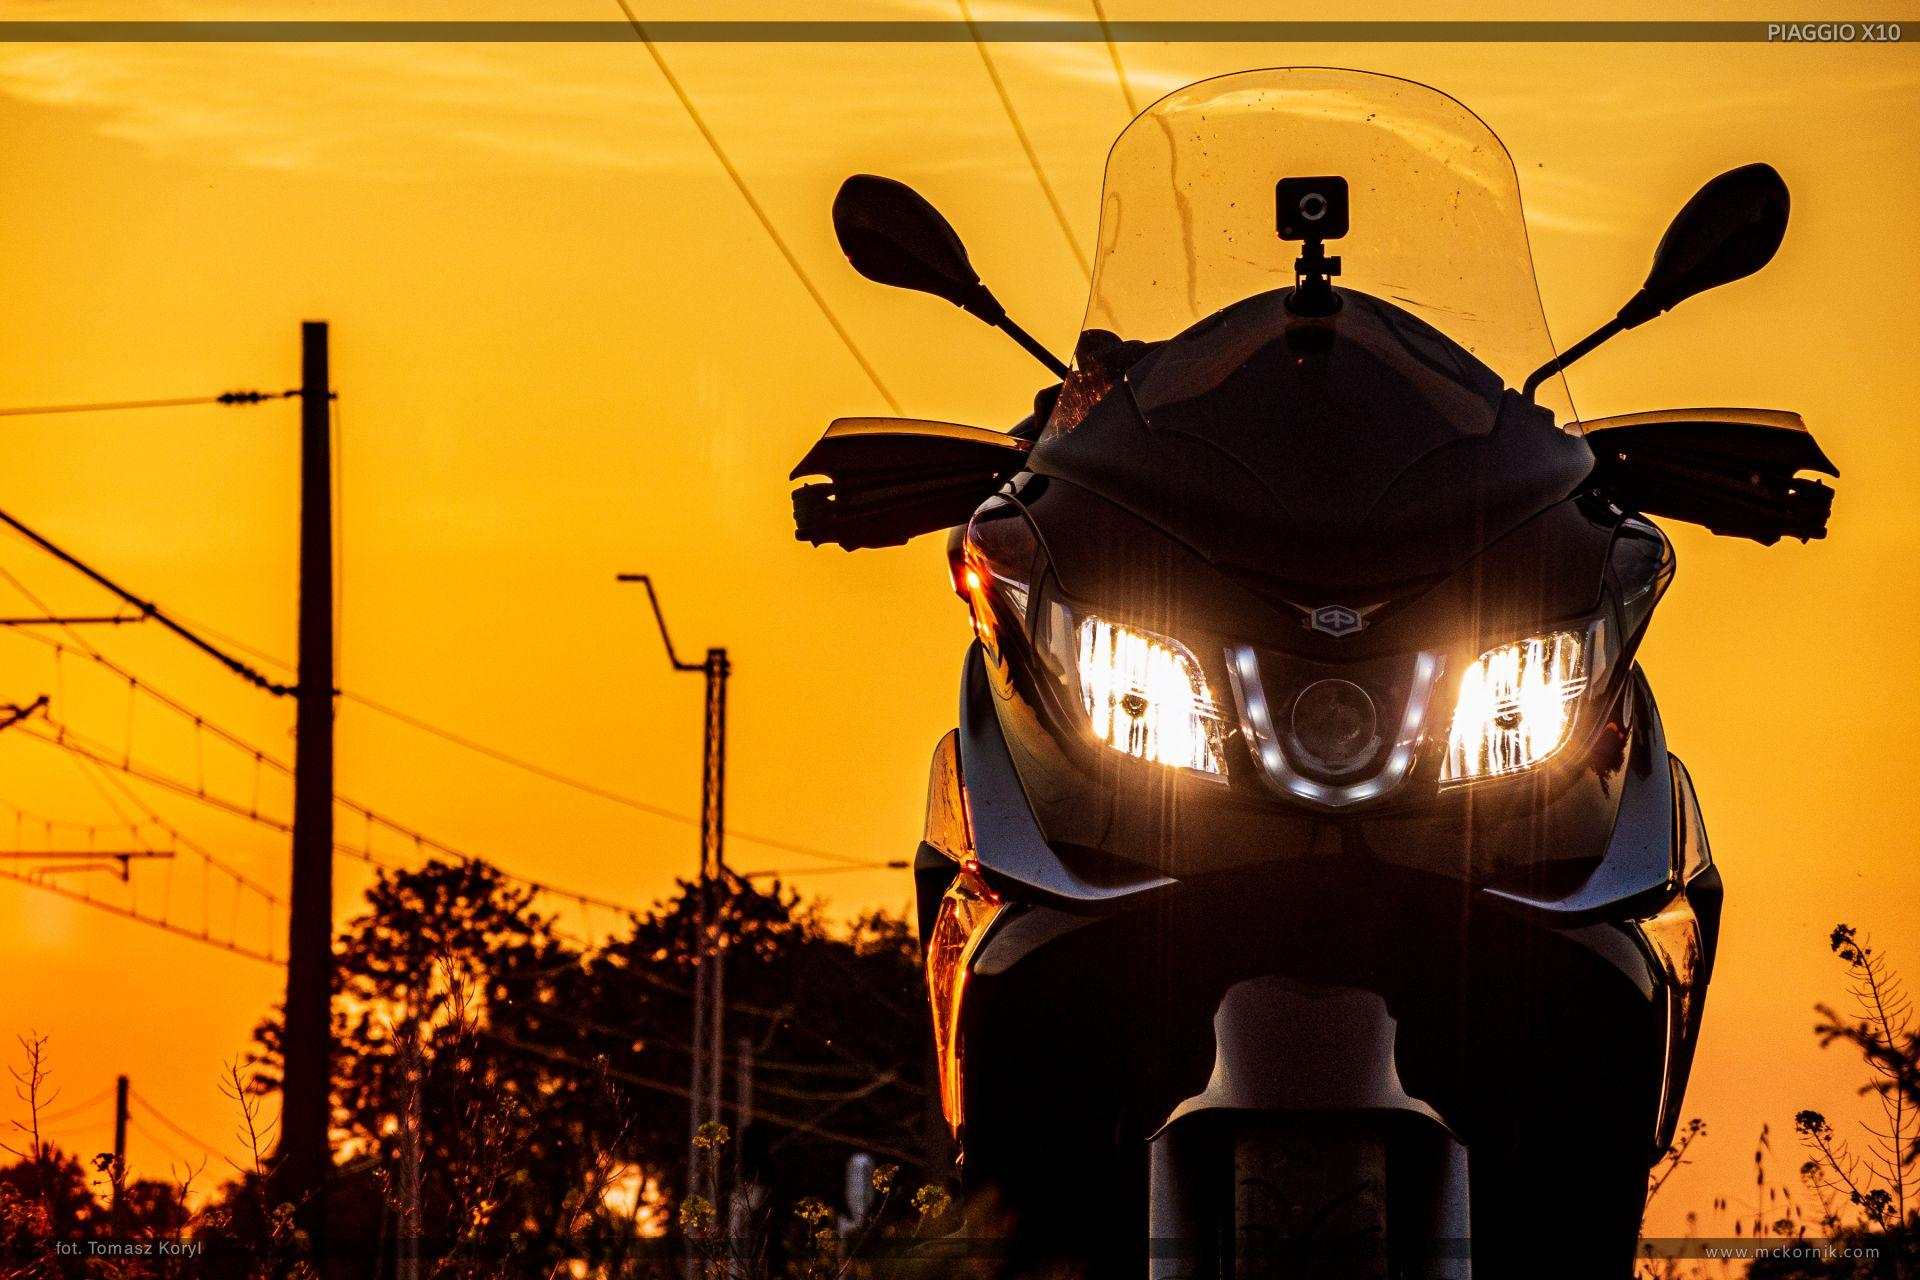 Piaggio X10 350 wallpapers - maxi scooter - fot. Tomasz Koryl - #scootertouring, #scooter, #scootertravel, #maxiscooter, #piaggio, #piaggioX10, #piaggio350